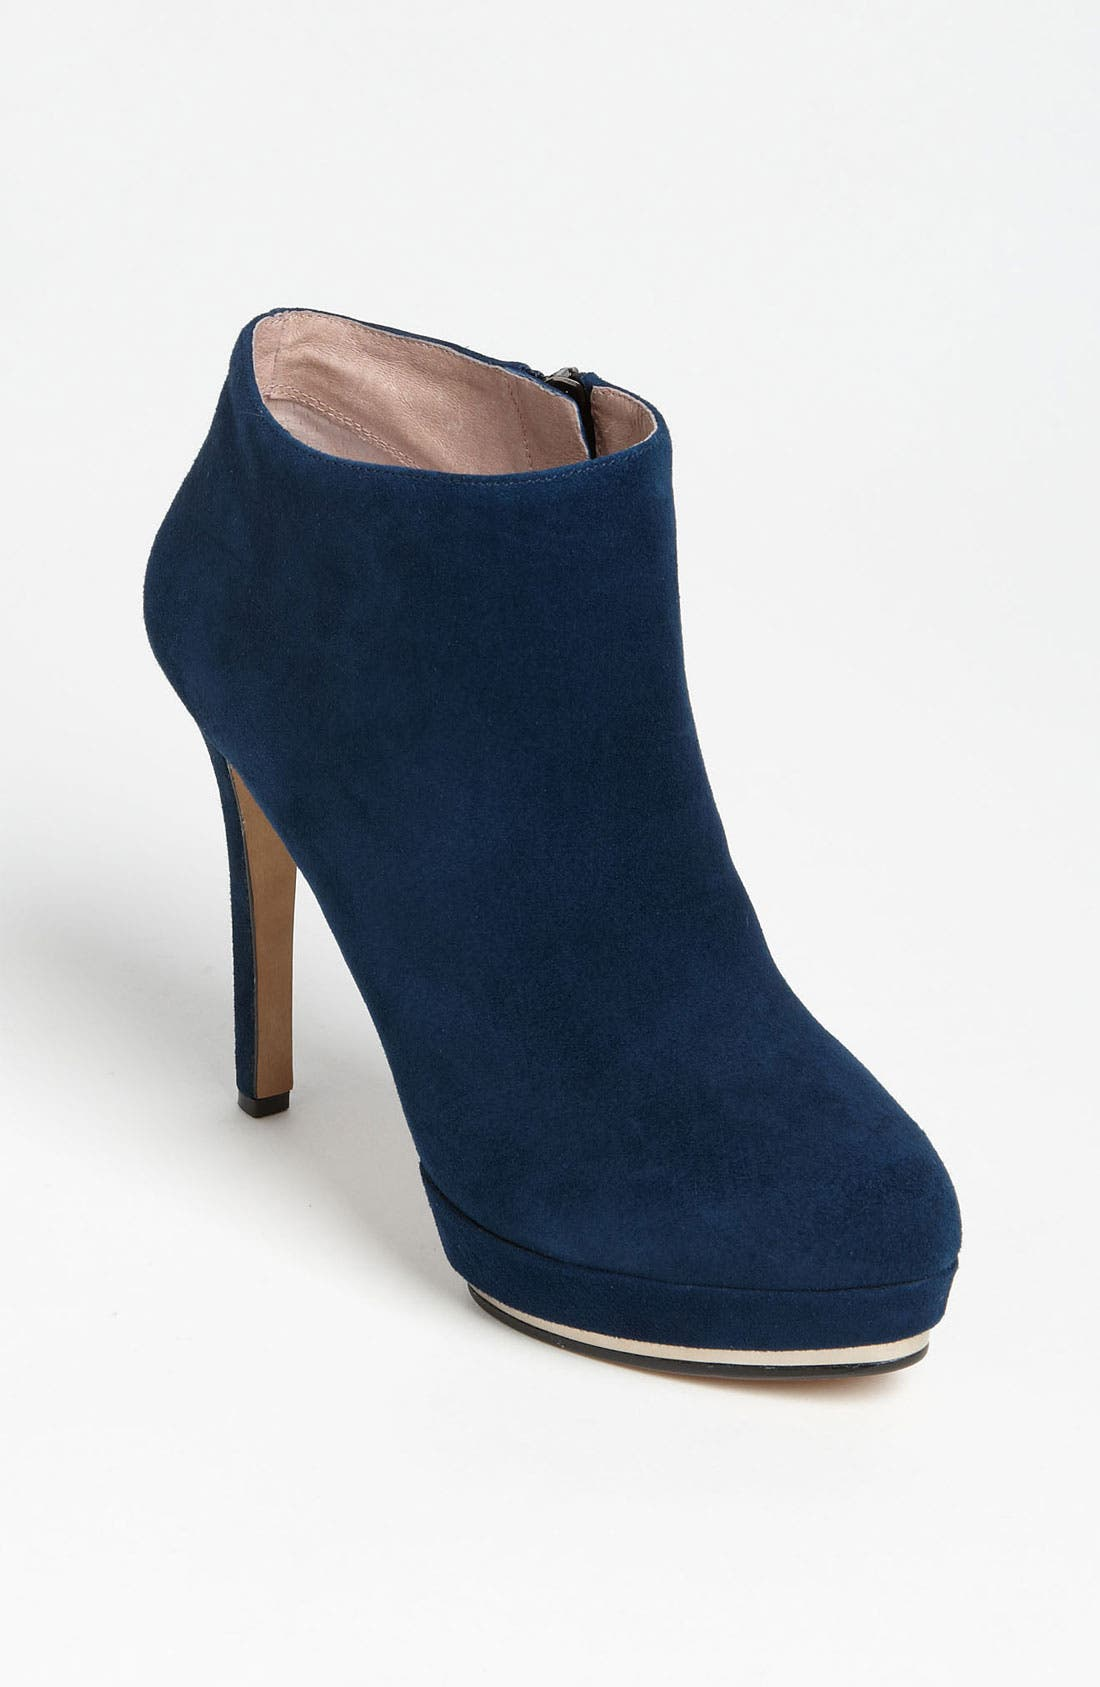 Main Image - Vince Camuto 'Dira' Bootie